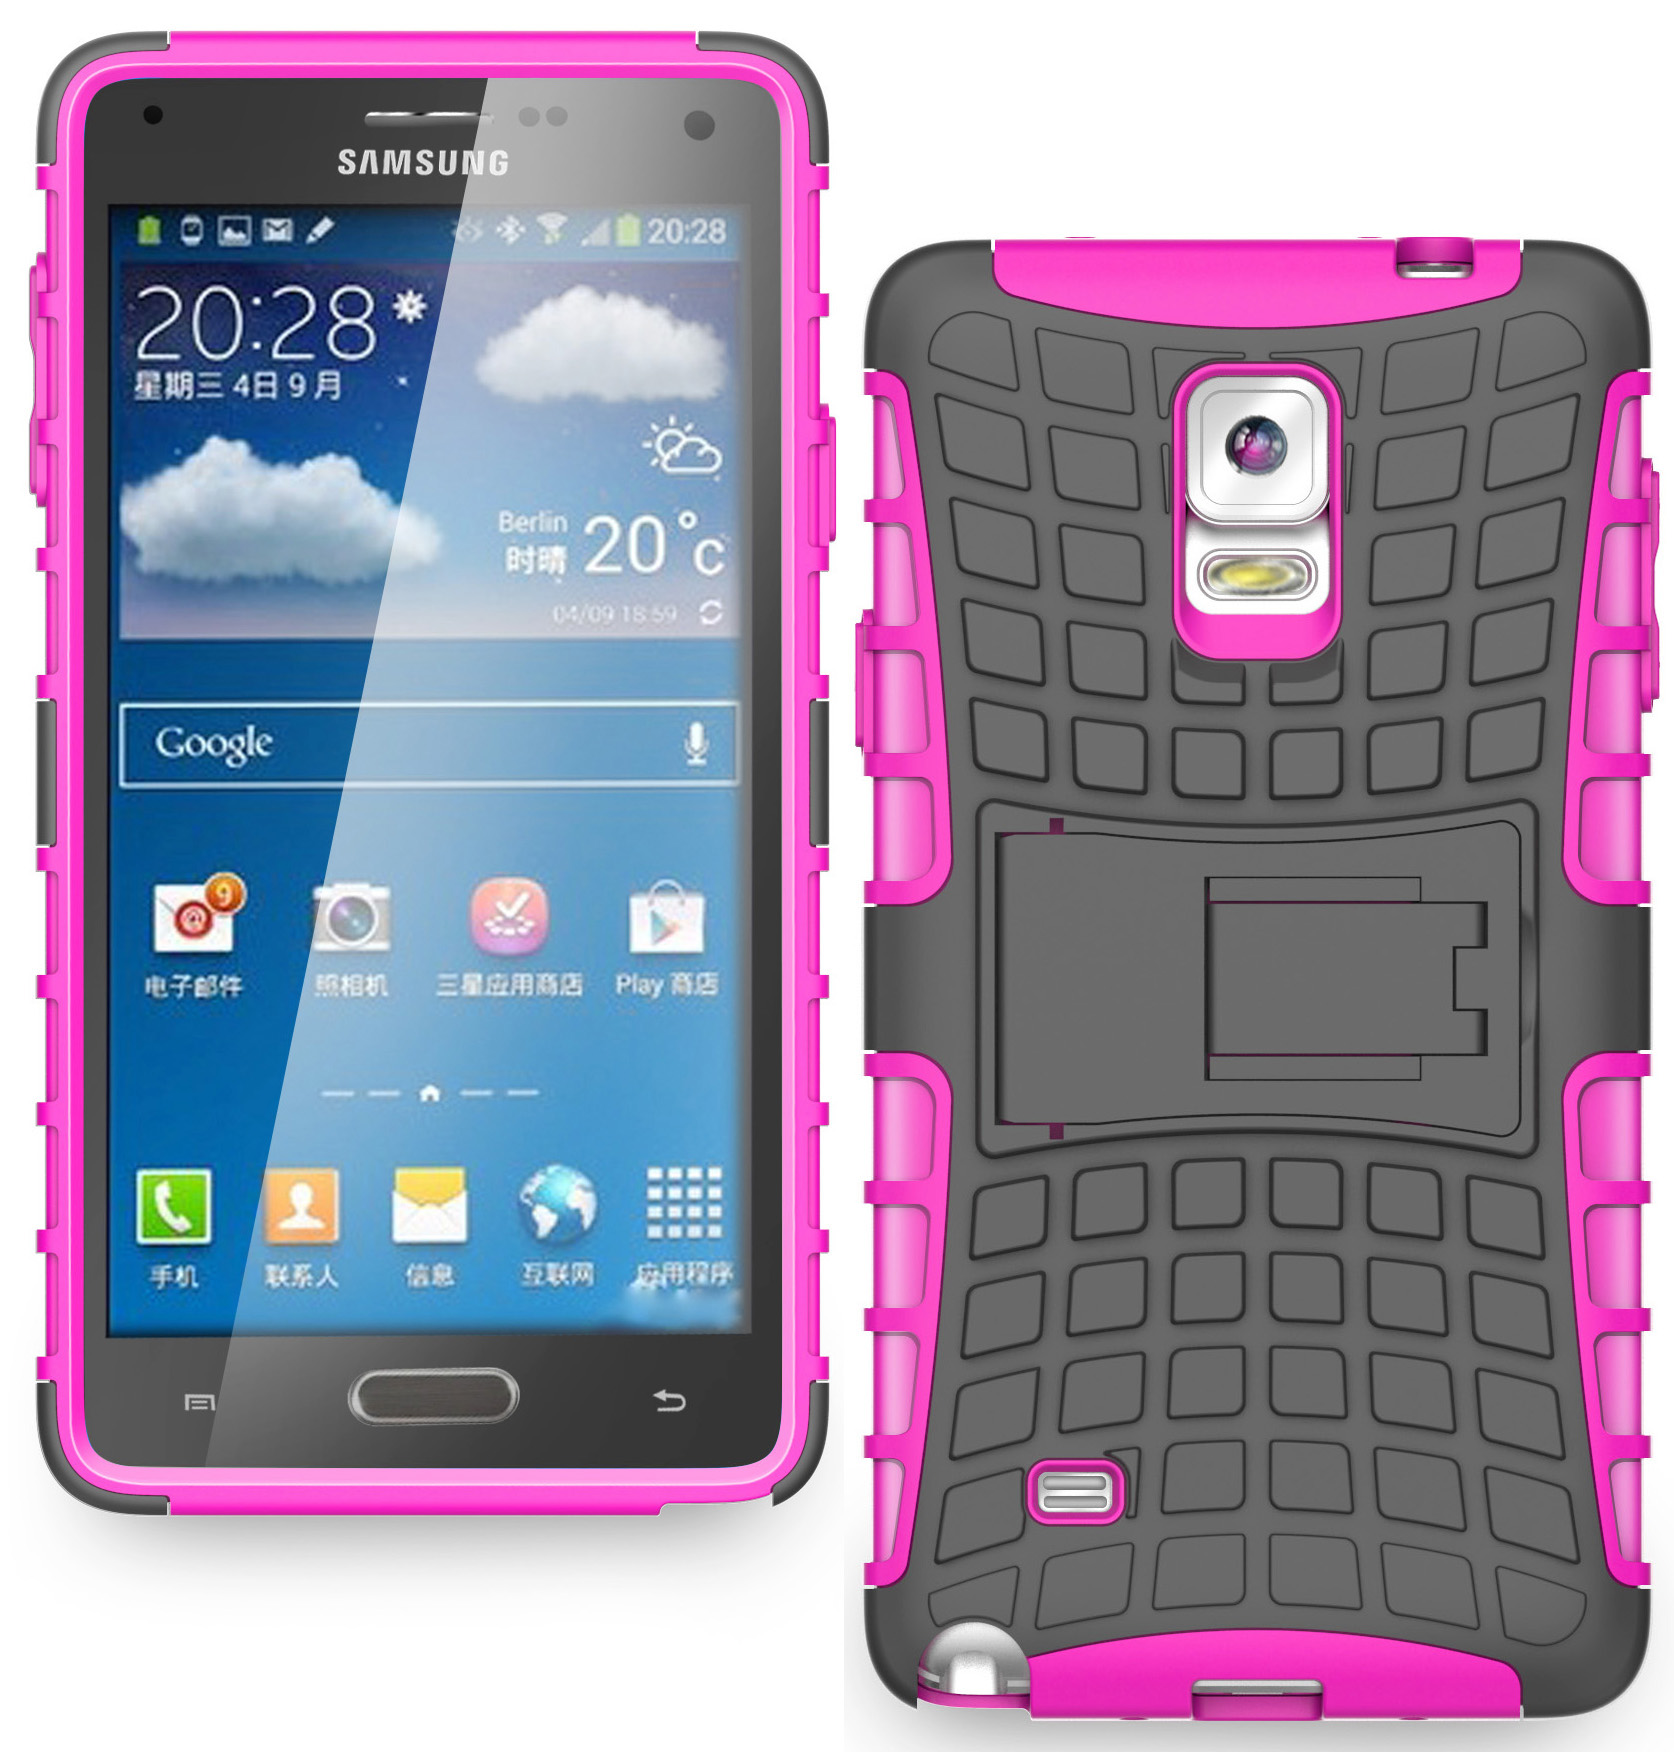 NAKEDCELLPHONE'S PINK GRENADE GRIP RUGGED SKIN HARD CASE COVER STAND FOR SAMSUNG GALAXY NOTE 4 (AT&T, T-MOBILE, SPRINT, VERIZON, US CELLULAR, UNLOCKED, N910V, N910R4, N910T, N910P, N910, N910C)